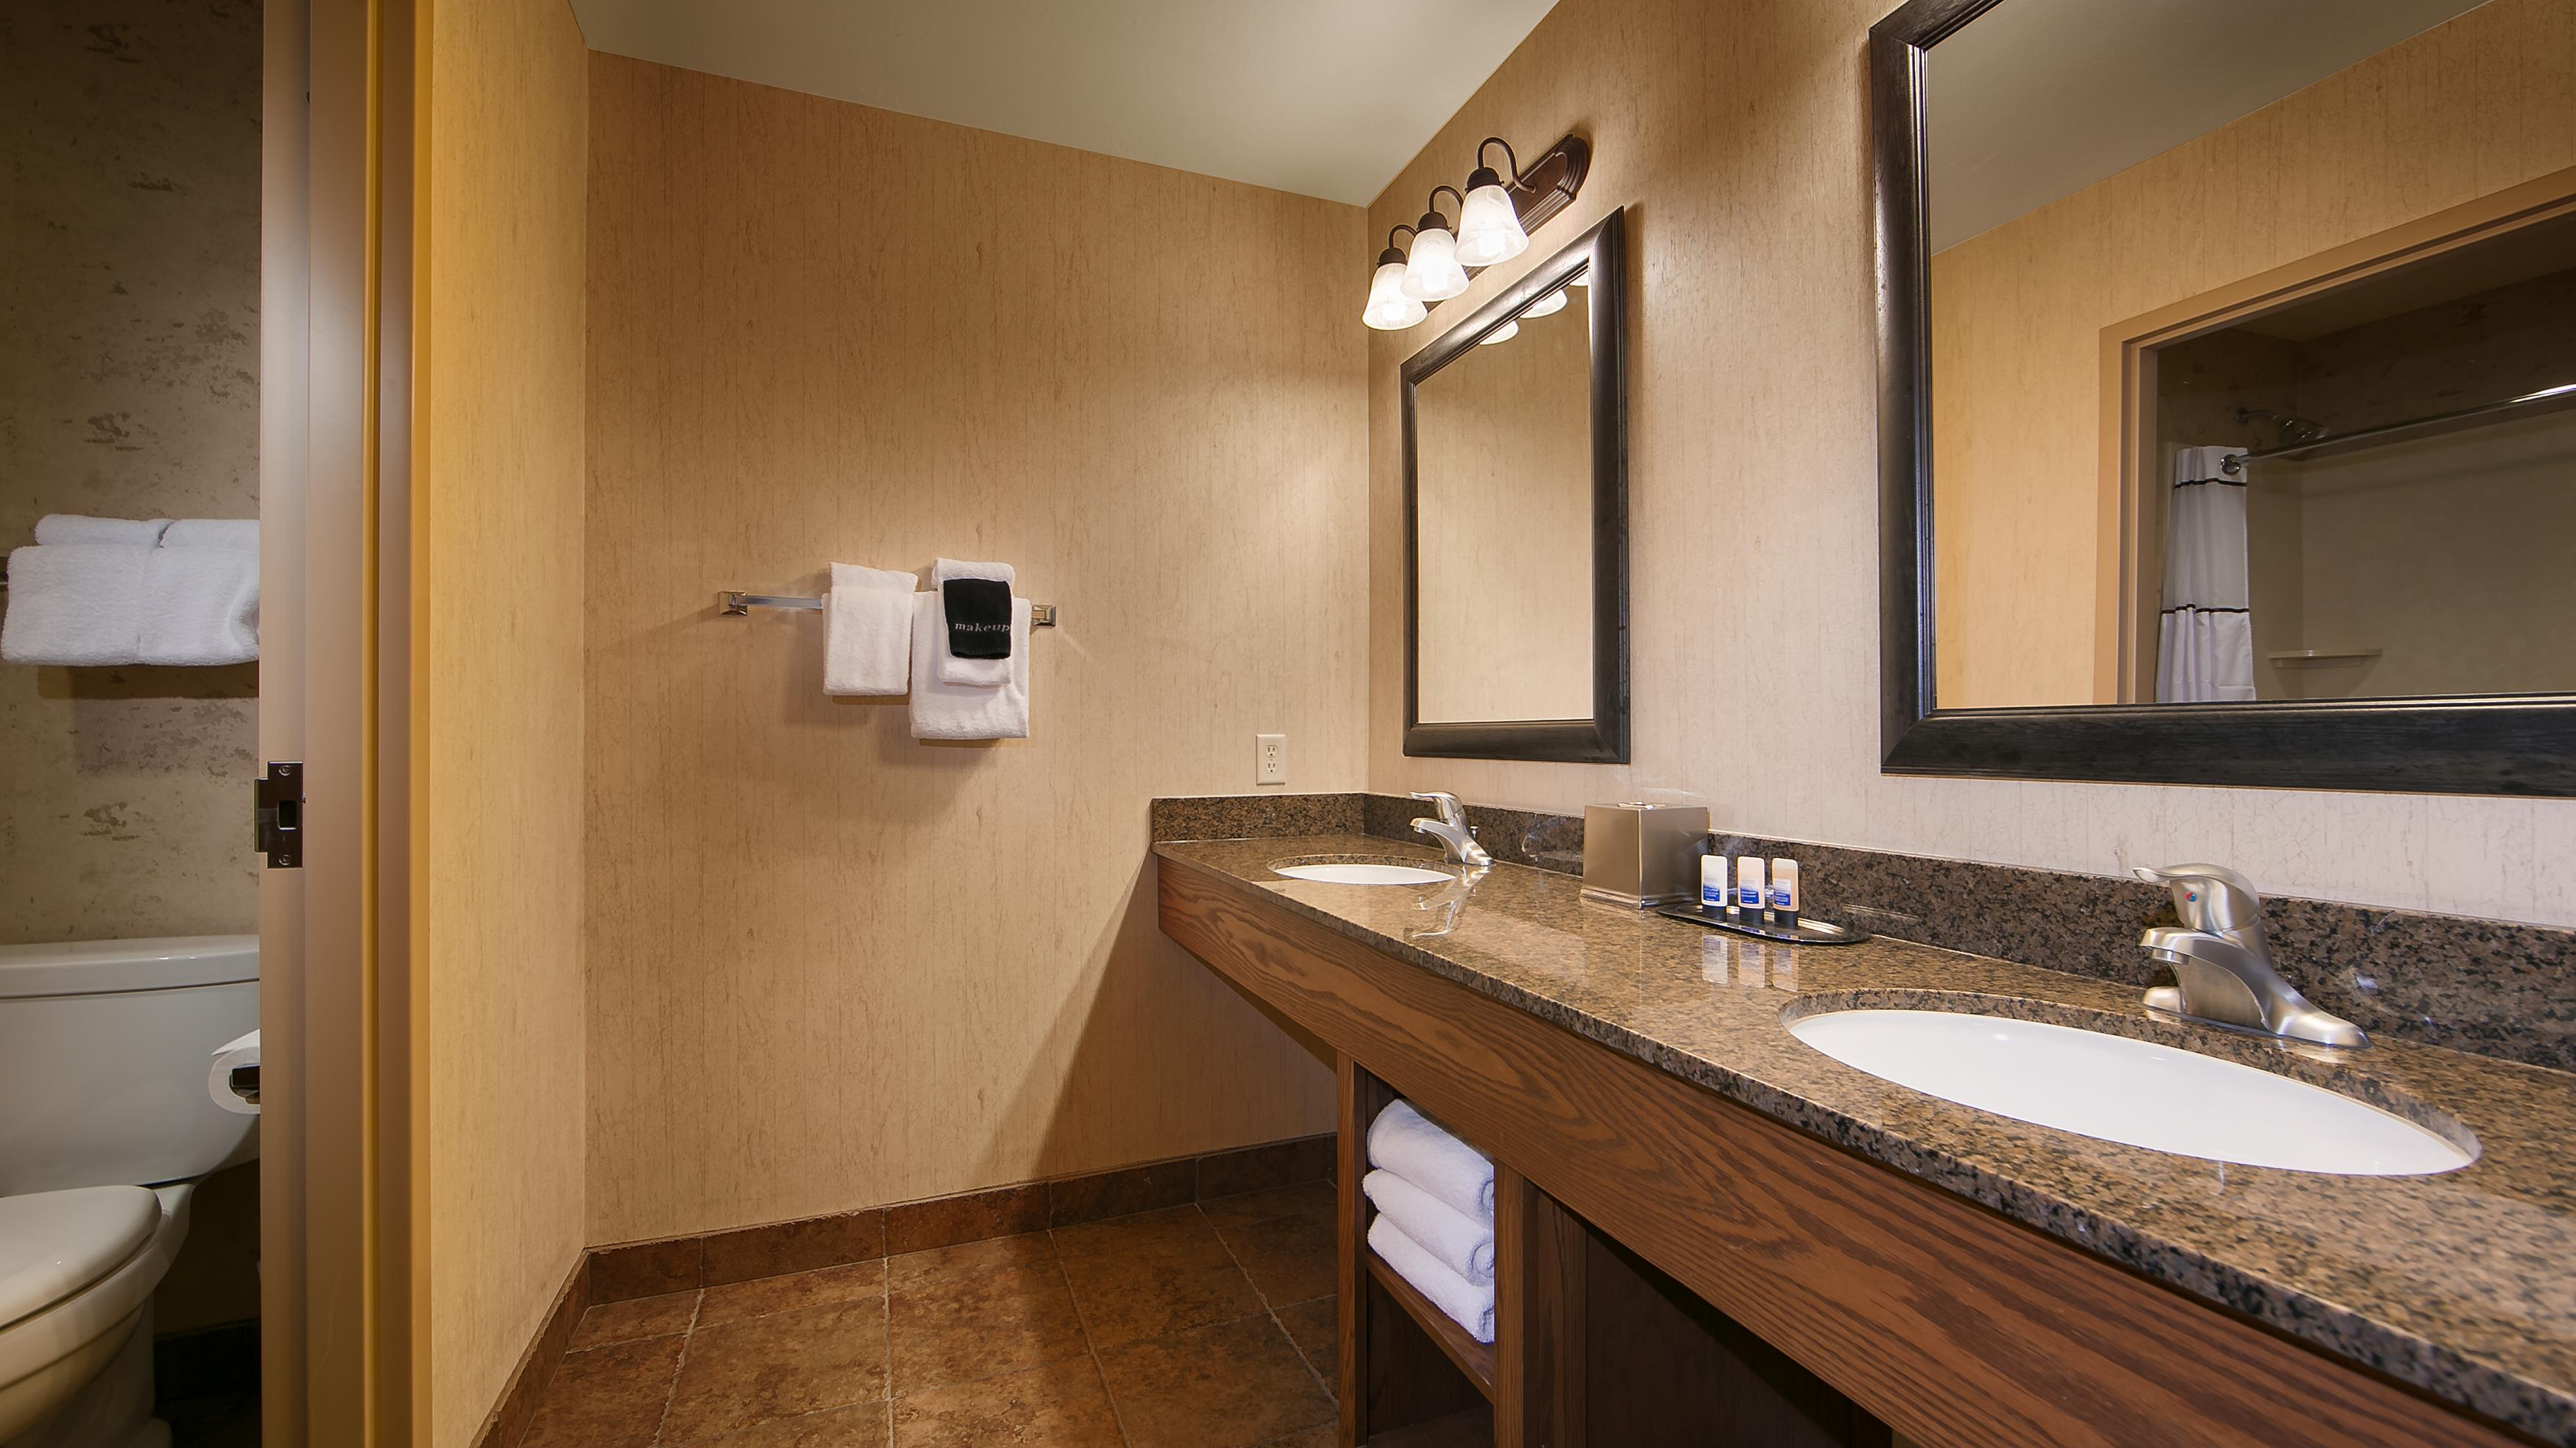 Best Western Plus Bryce Canyon Grand Hotel, Bryce Canyon City UT